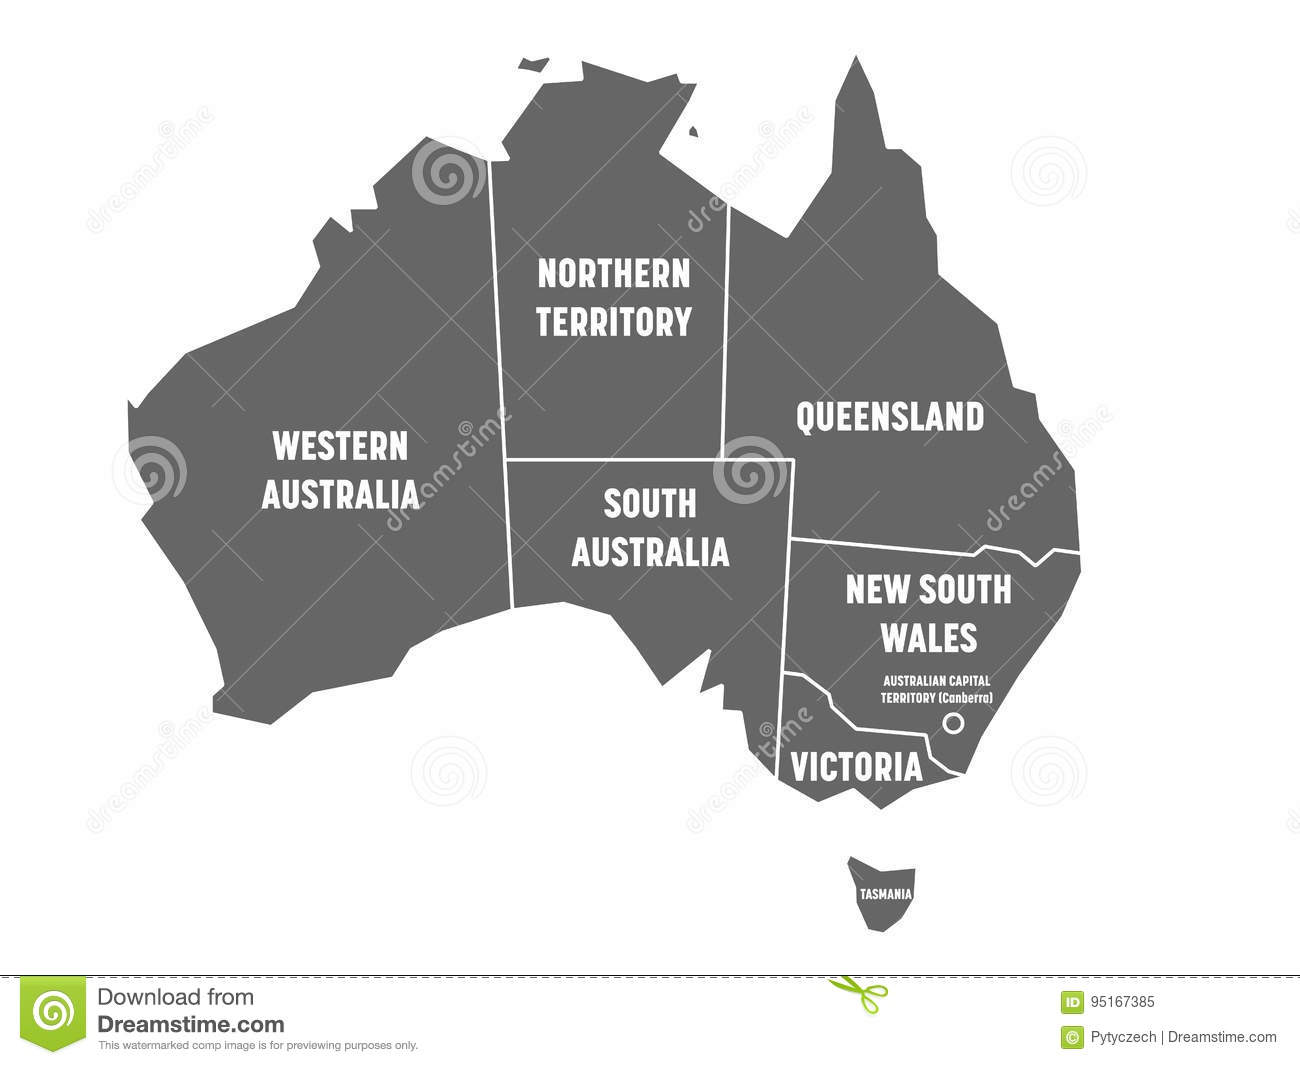 Map Of Australia And States.Simplified Map Of Australia Divided Into States And Territories